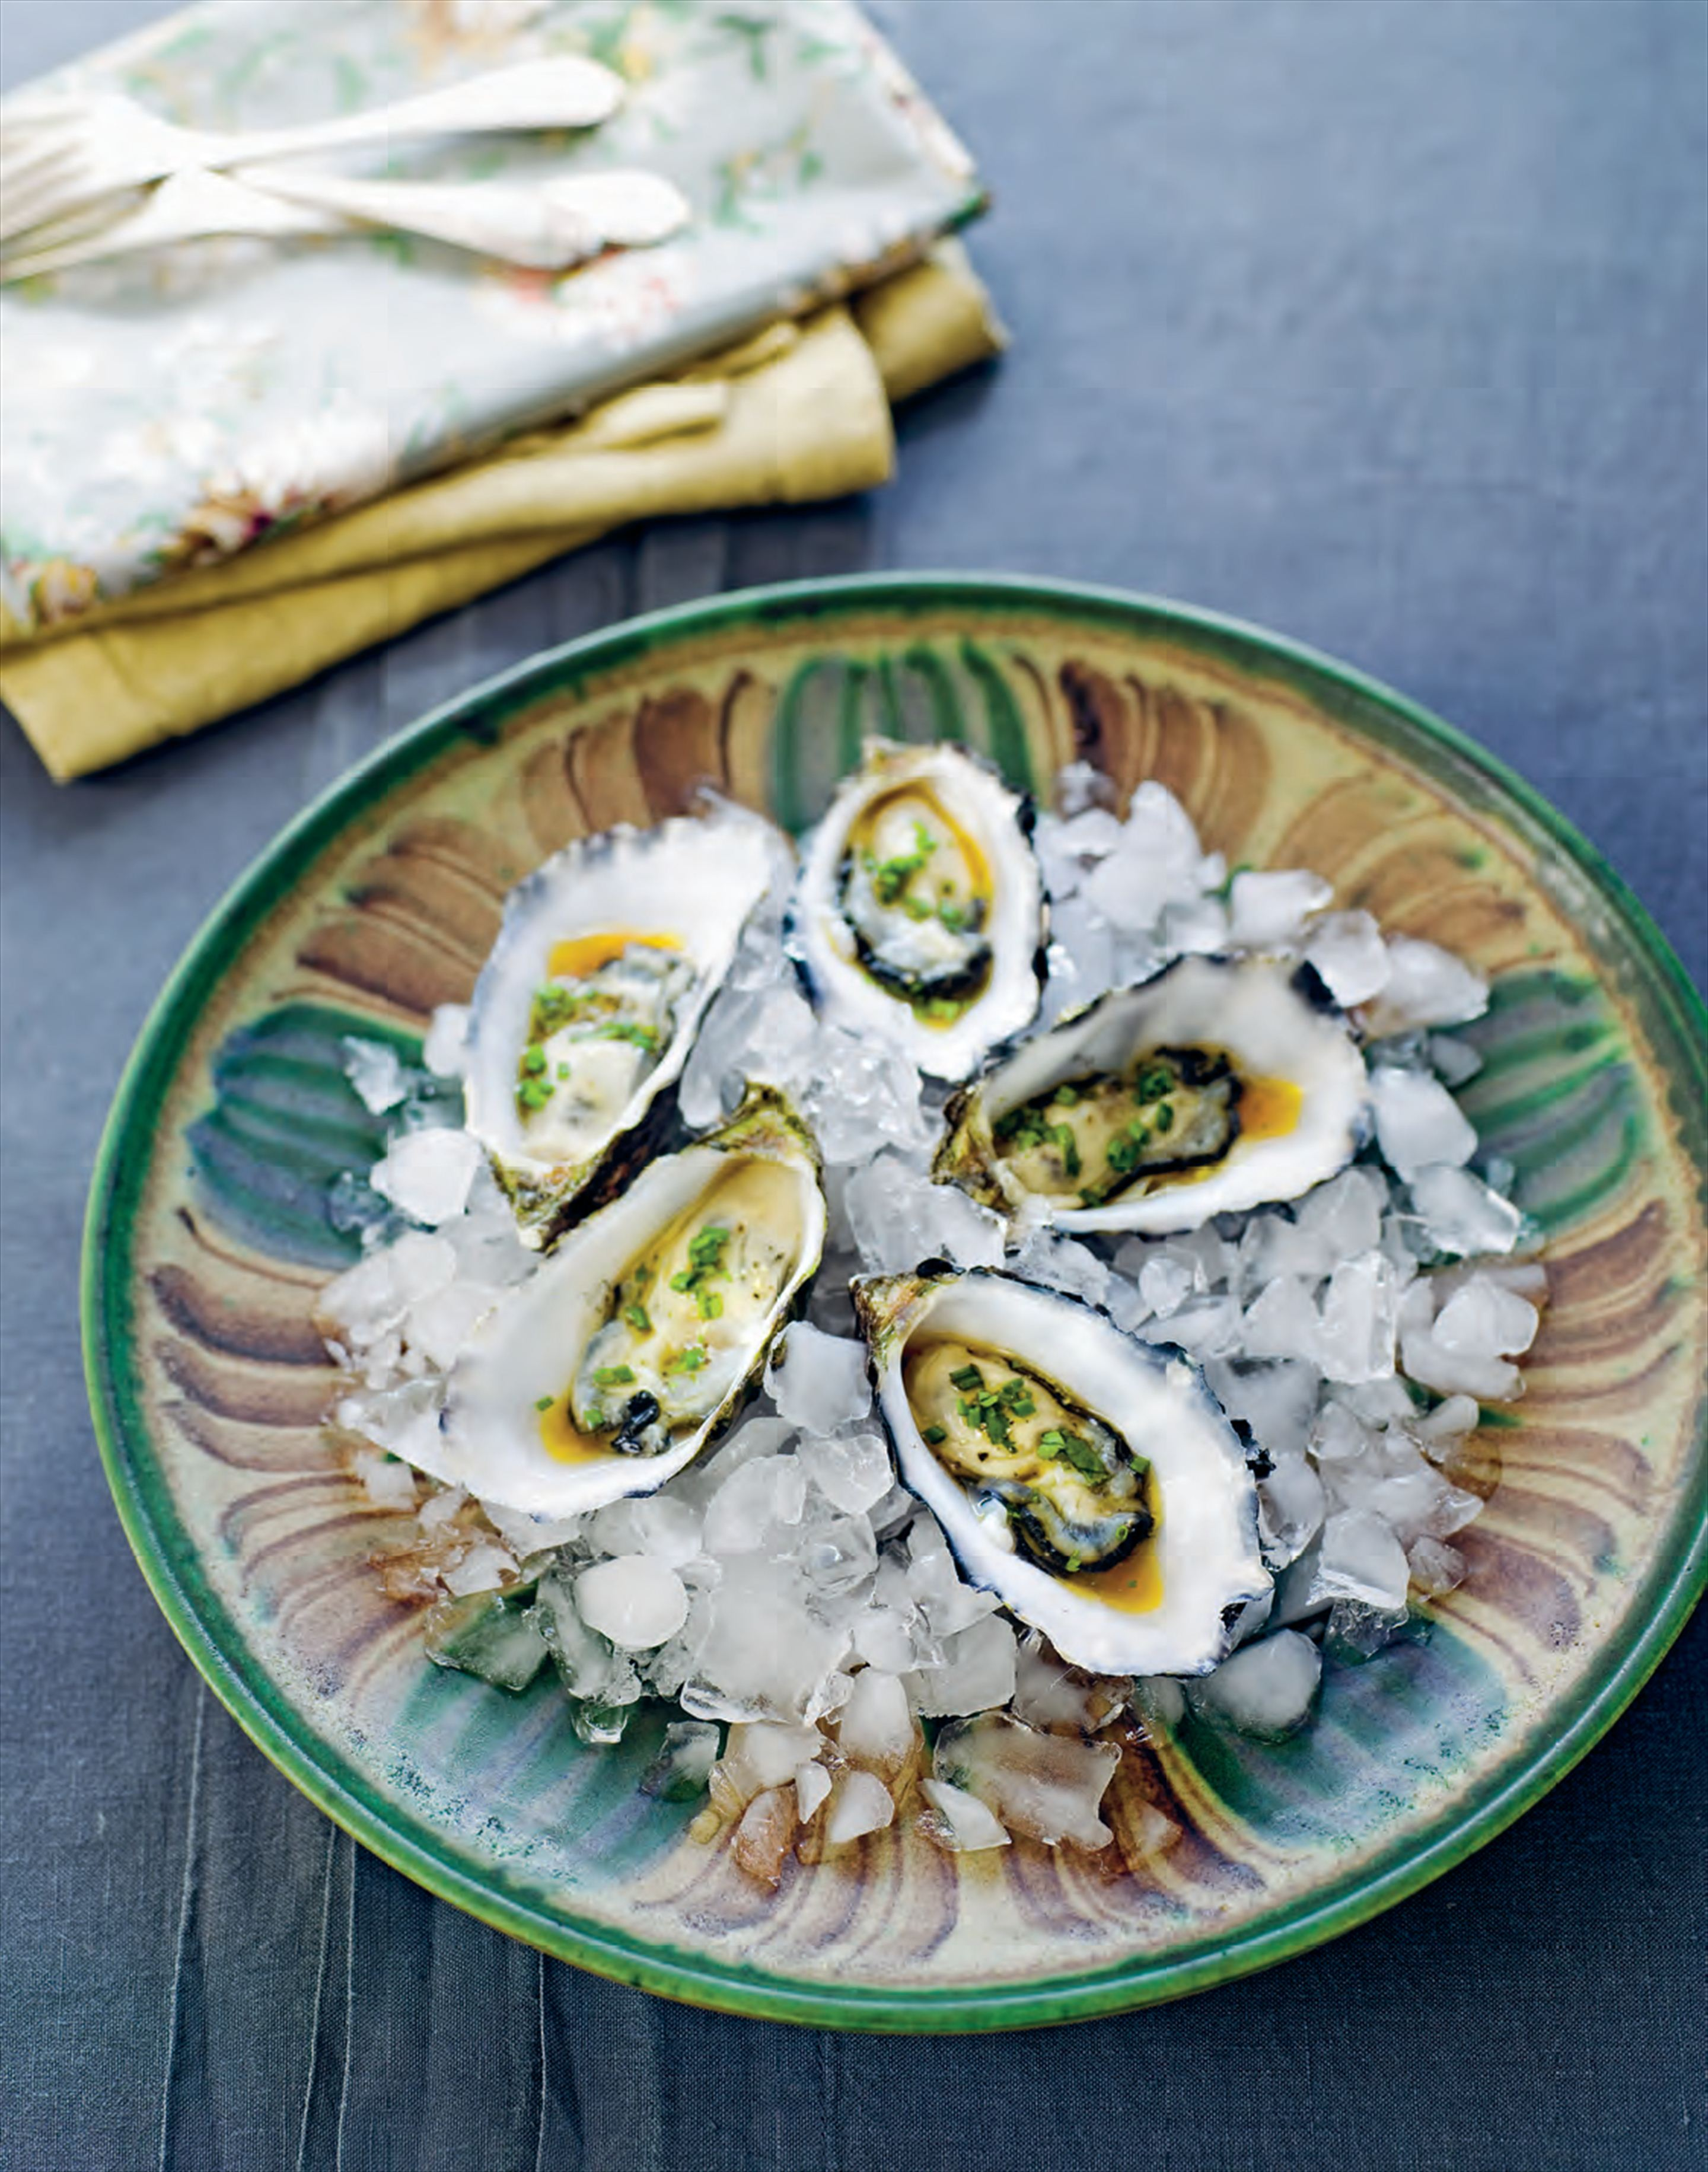 Oysters with coriander dressing